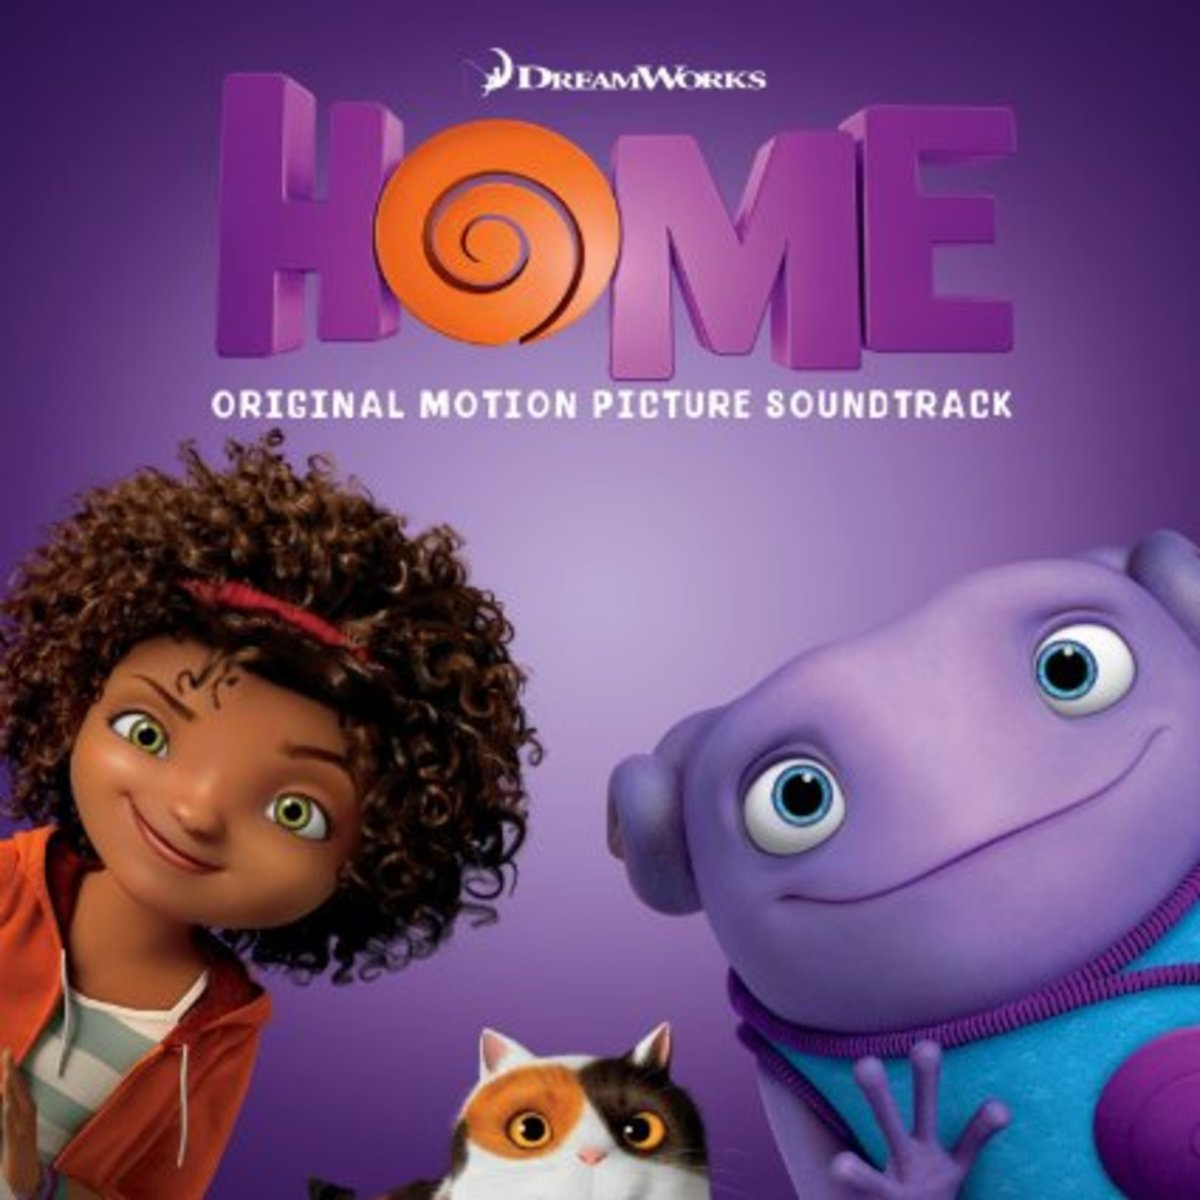 The Home Soundtrack will make you want to dance with tunes from J Lo and Rhianna.